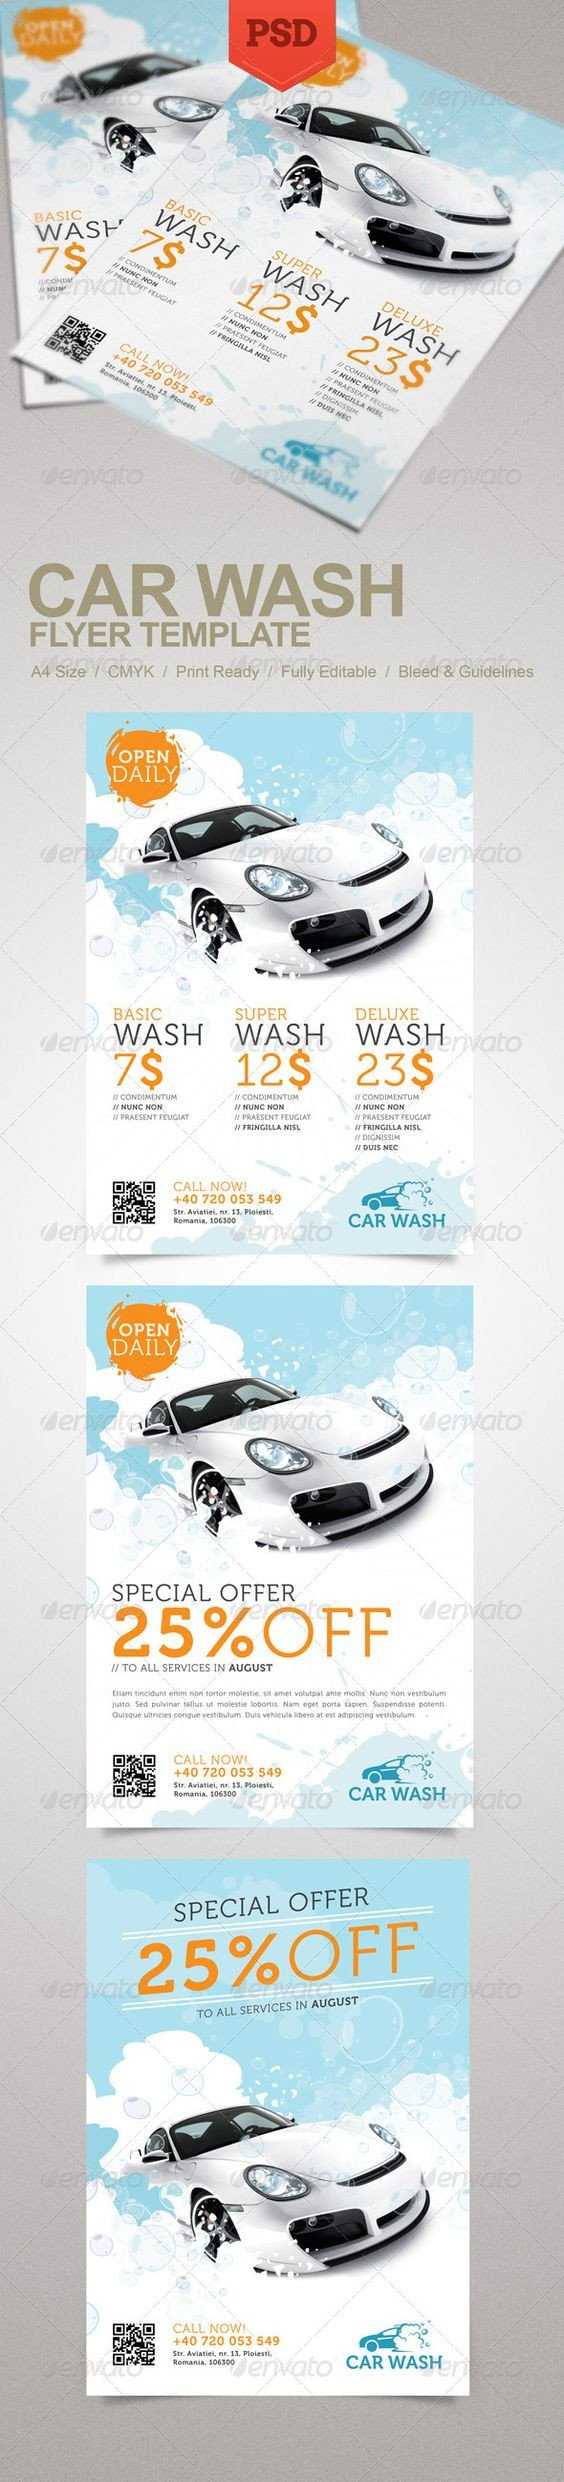 Car Wash Flyers Template Car Wash Flyer